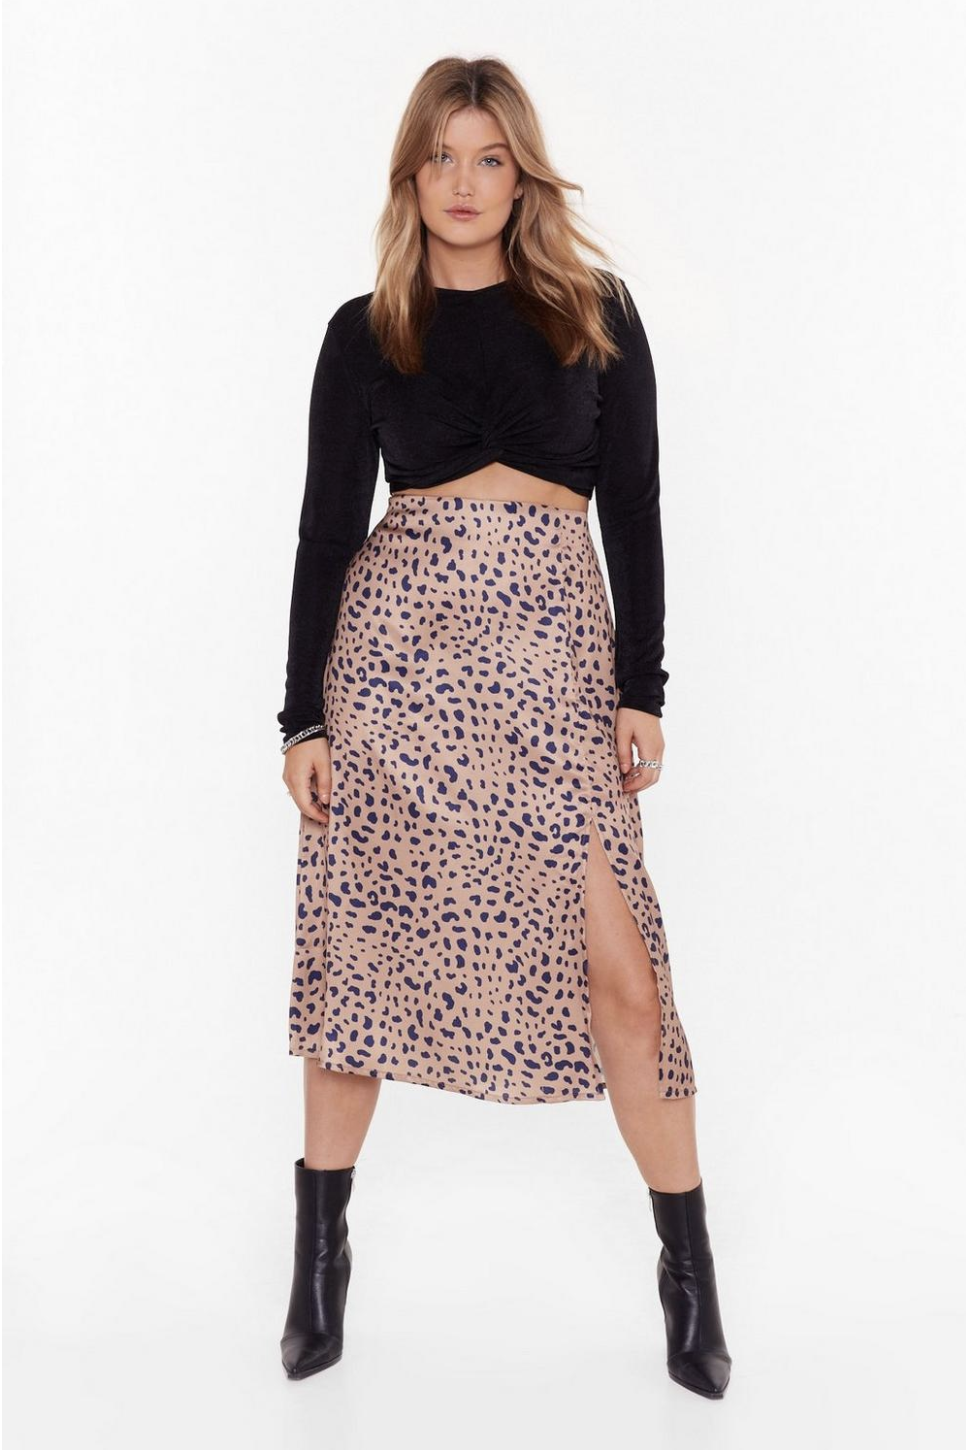 A model wearing a long sleeved-black crop top and a high-waisted pink midi skirt that has one leg slit.